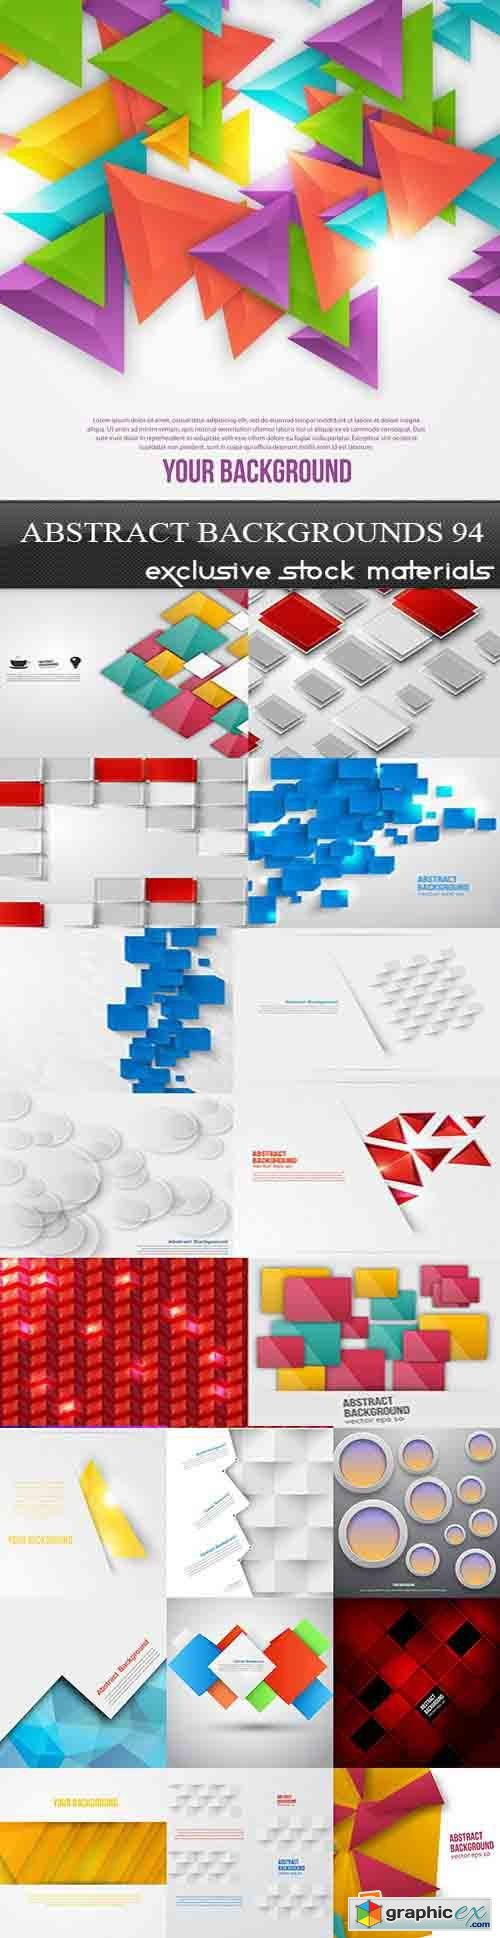 Collection of Vector Abstract Backgrounds Vol.94, 25xEPS